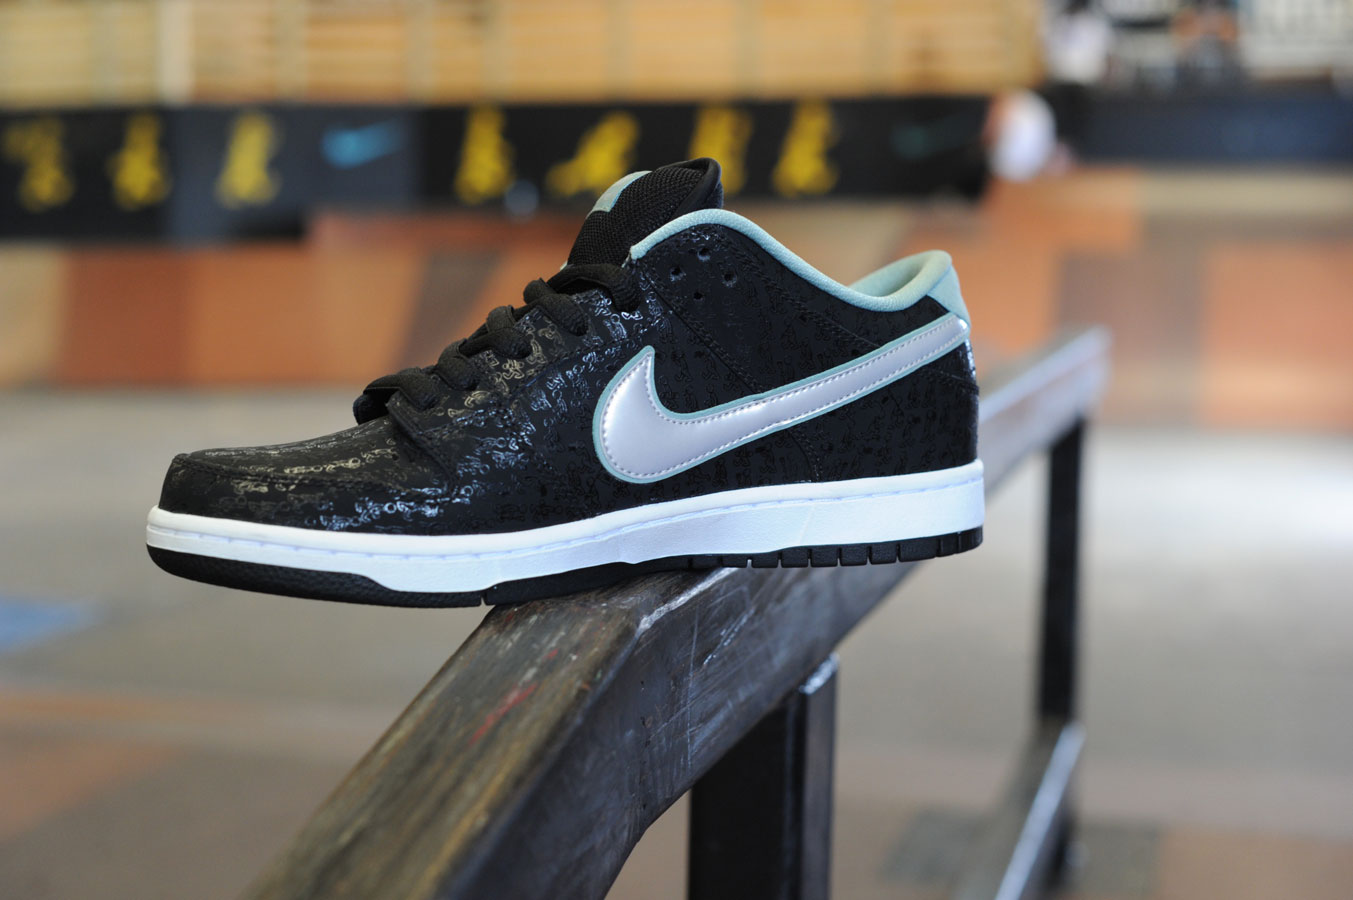 check out dc6a8 8f556 Skate Park of Tampa presents its newest collaboration with Nike SB, a Lance  Mountain-designed Dunk Low celebrating SPoTs 20th anniversary.